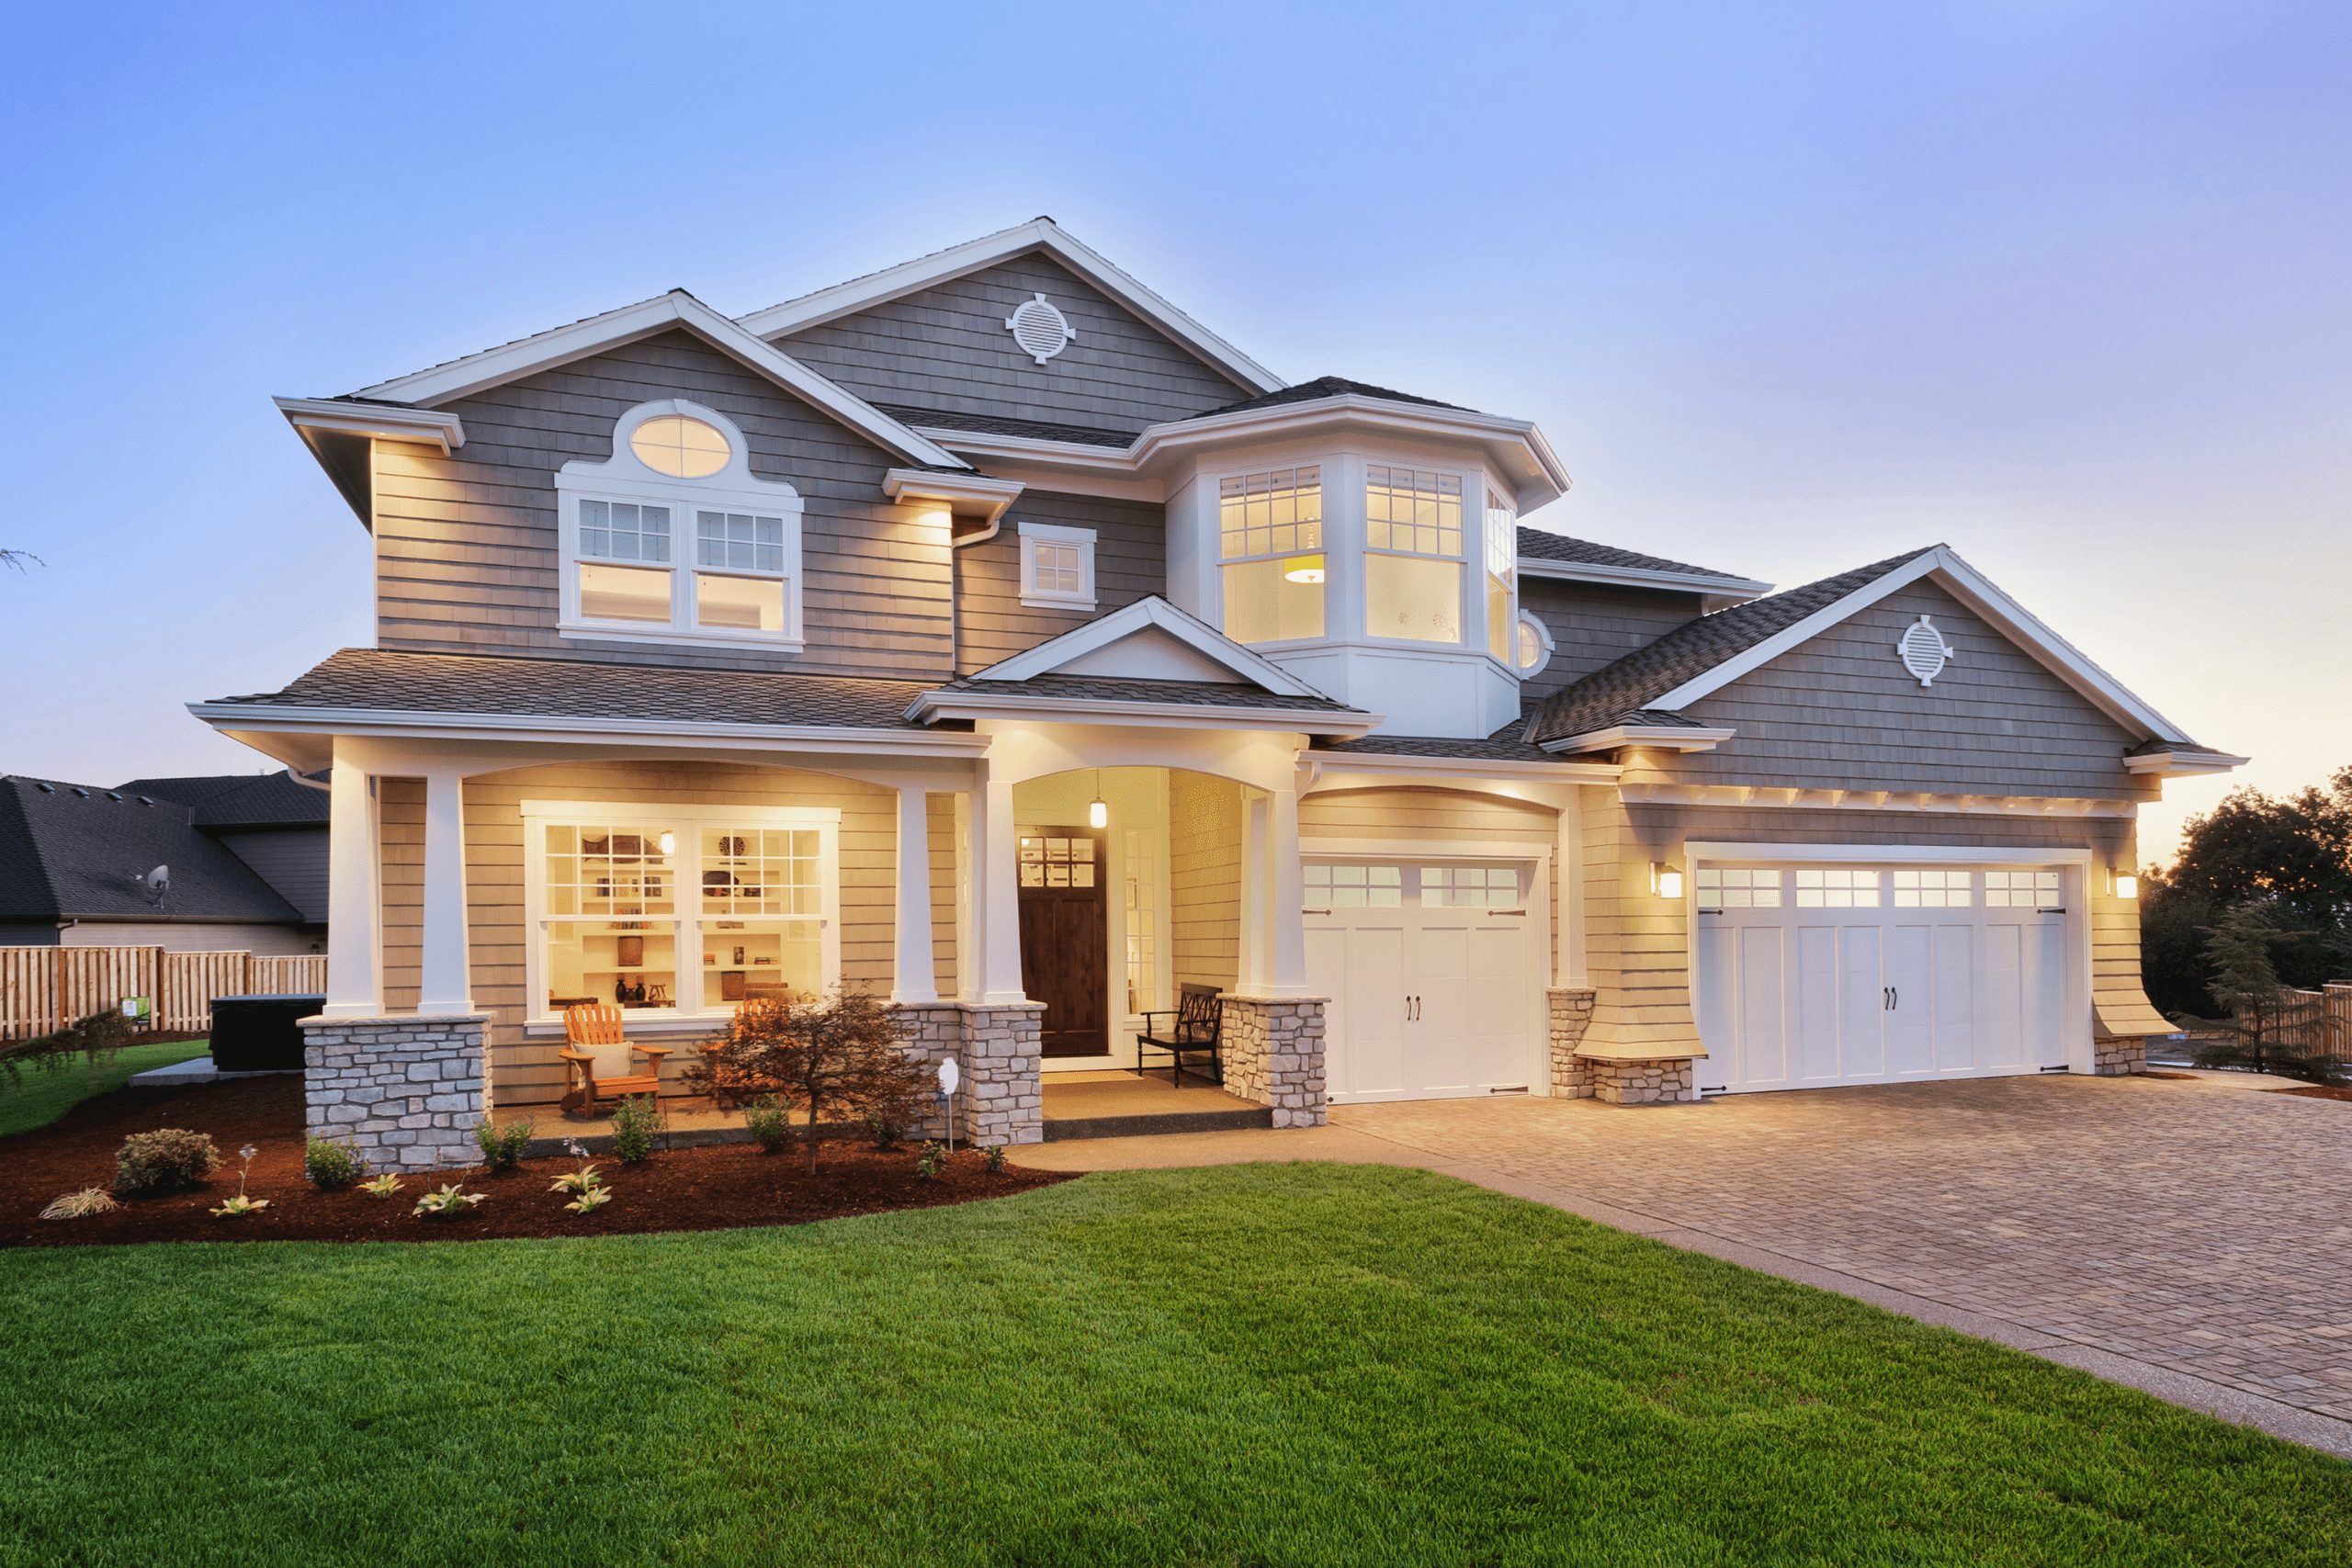 Jumbo Loans: What You Need to Know